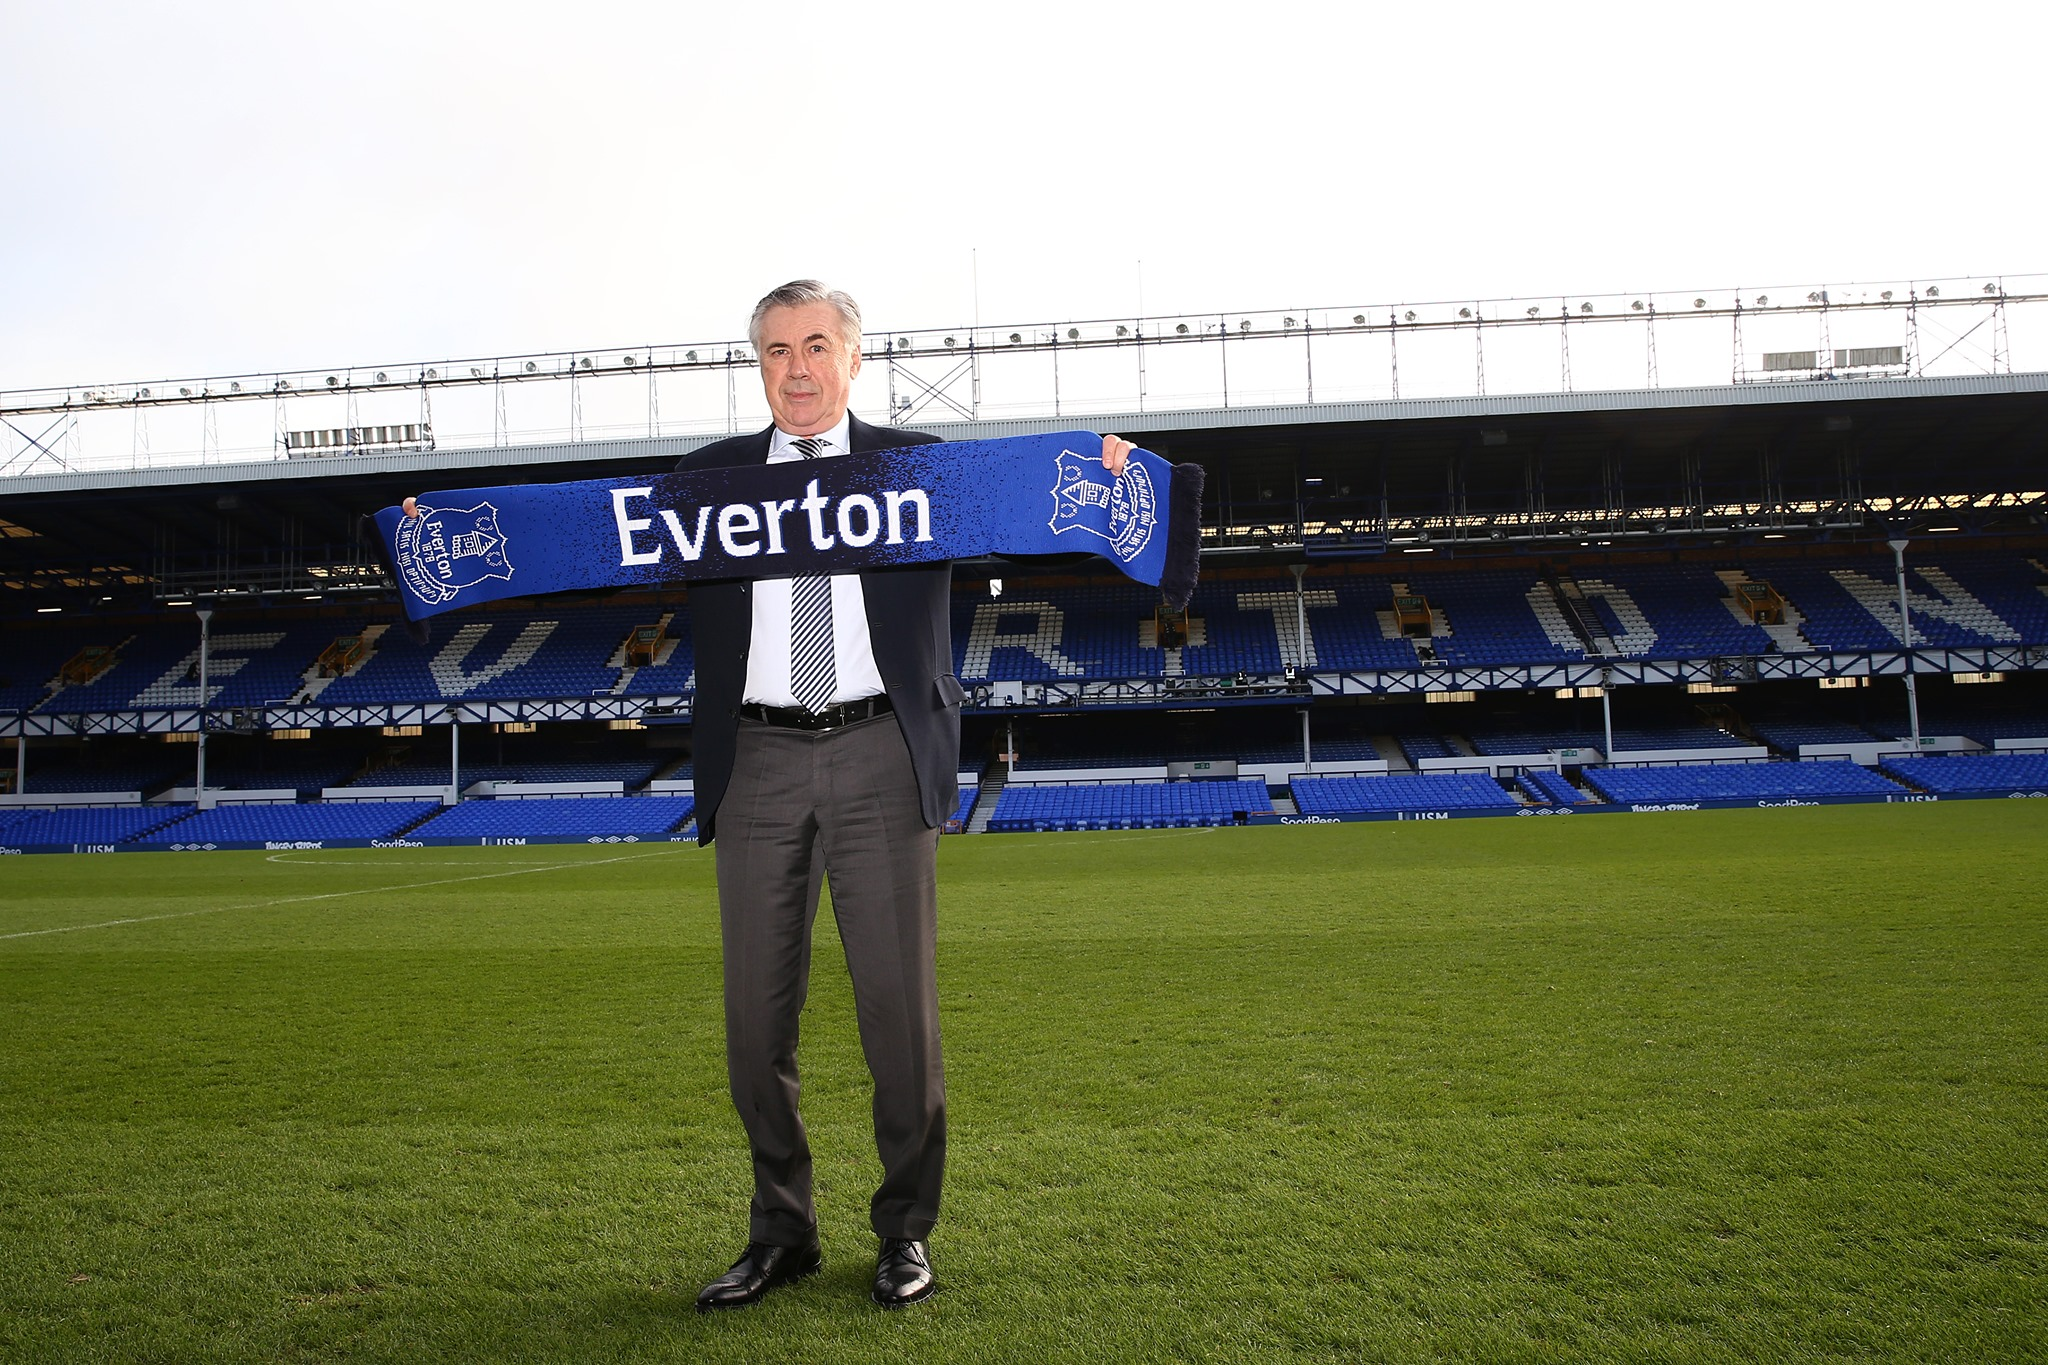 'A flawless day' - Ancelotti delighted to start Everton tenure with a win